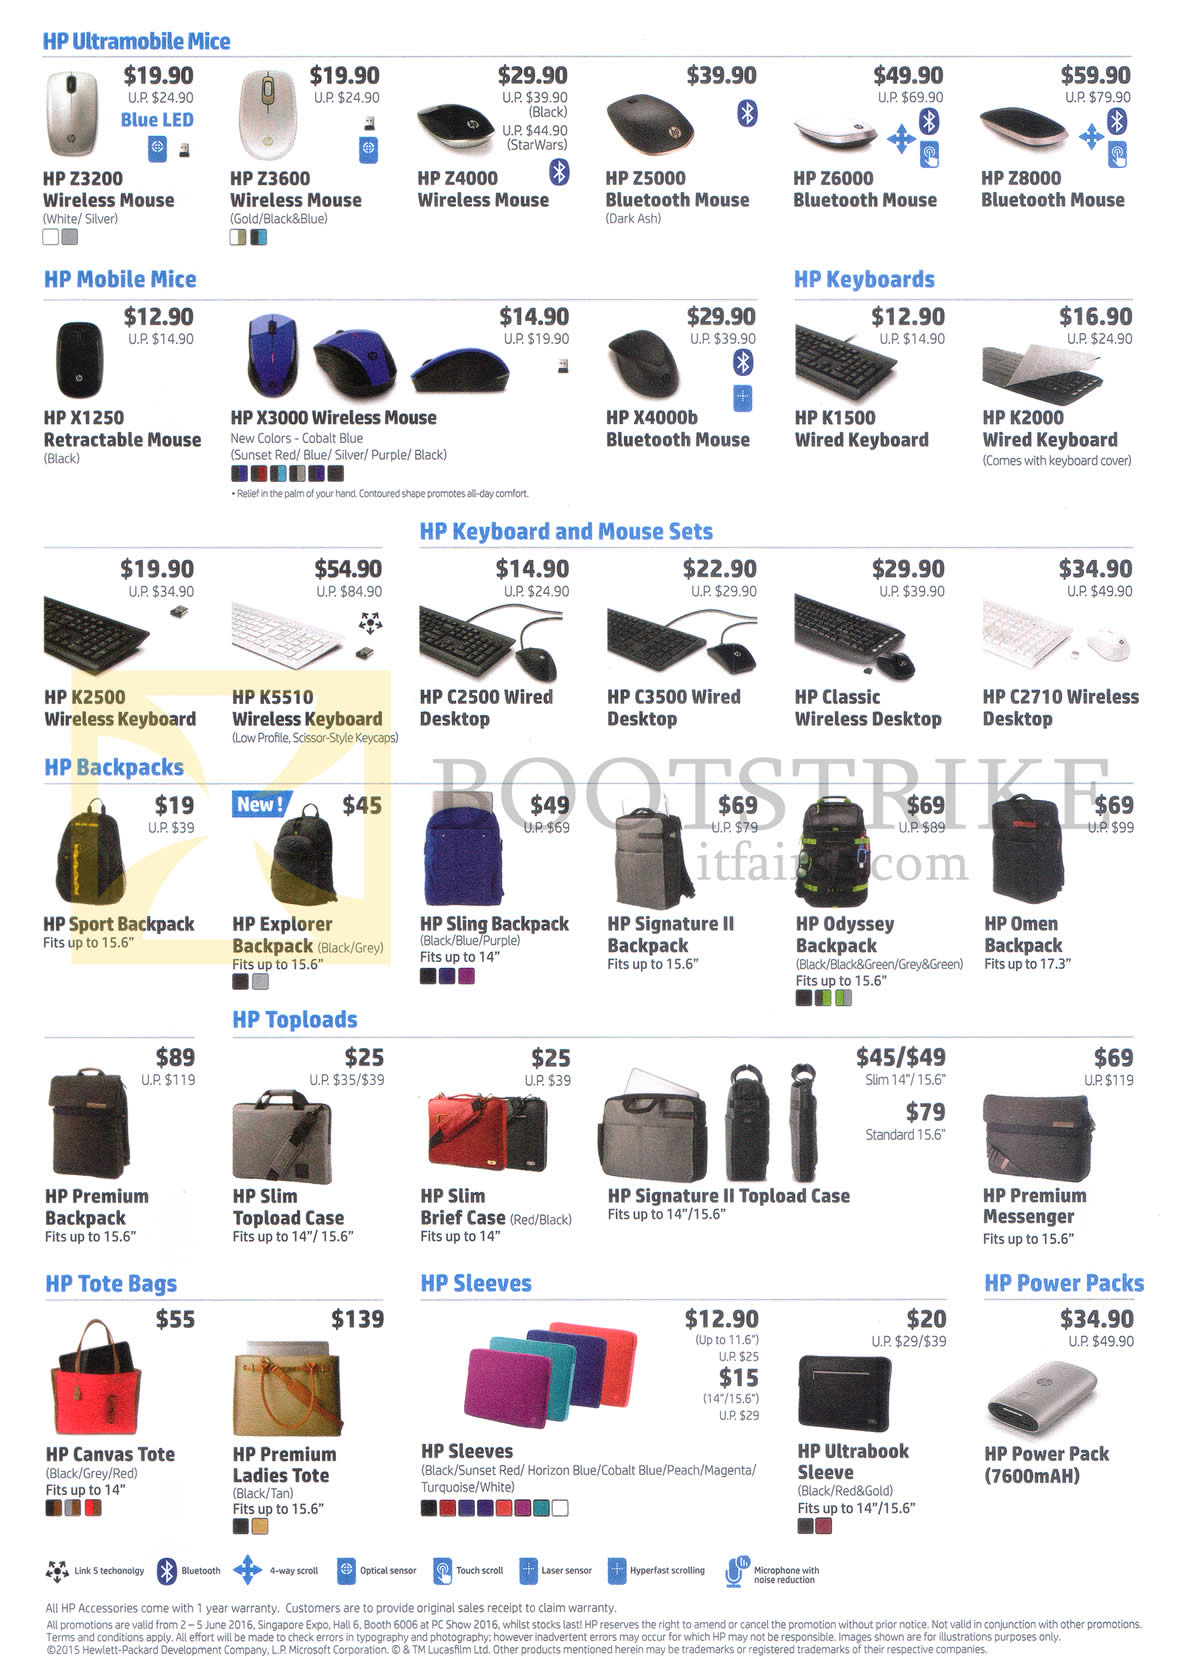 PC SHOW 2016 price list image brochure of HP Accessories Mouse, Keyboards, Backpacks, Toploads, Totebags, Sleeves, Power Packs